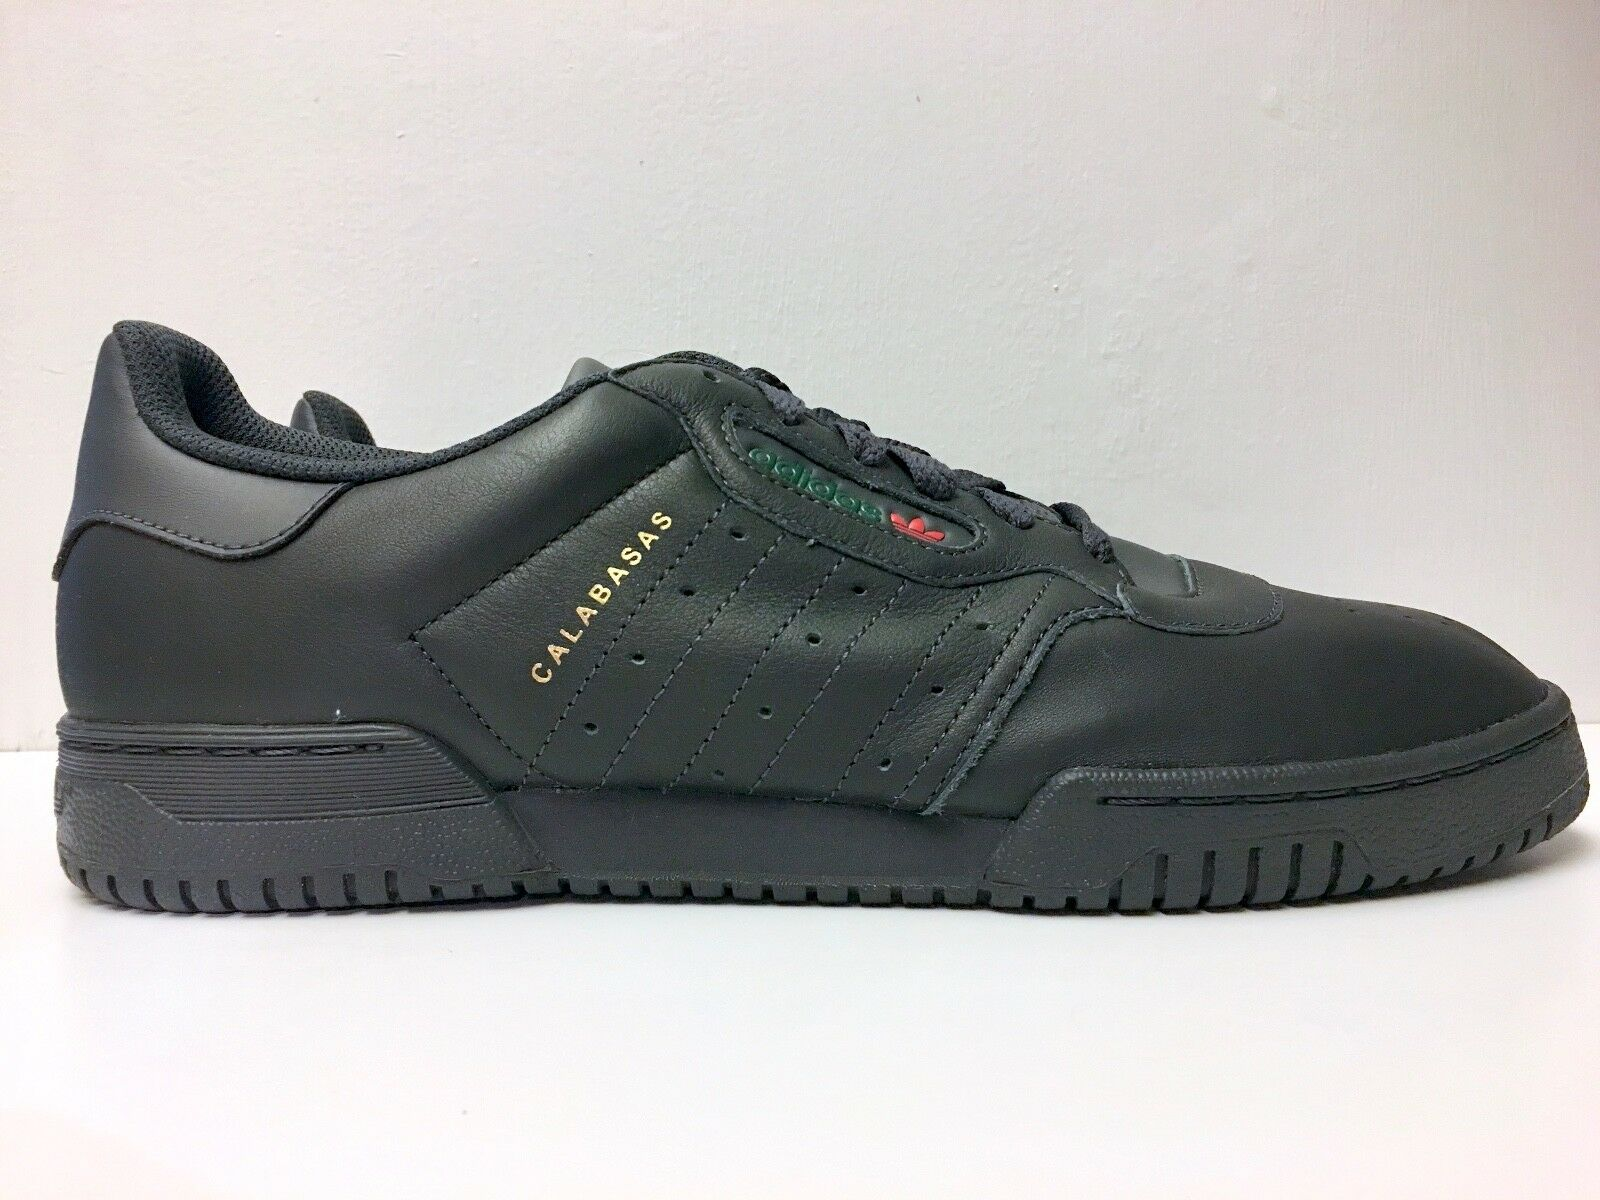 YEEZY Powerphase Core Black Size 10 Deadstock Original Box Calabasas Brand New